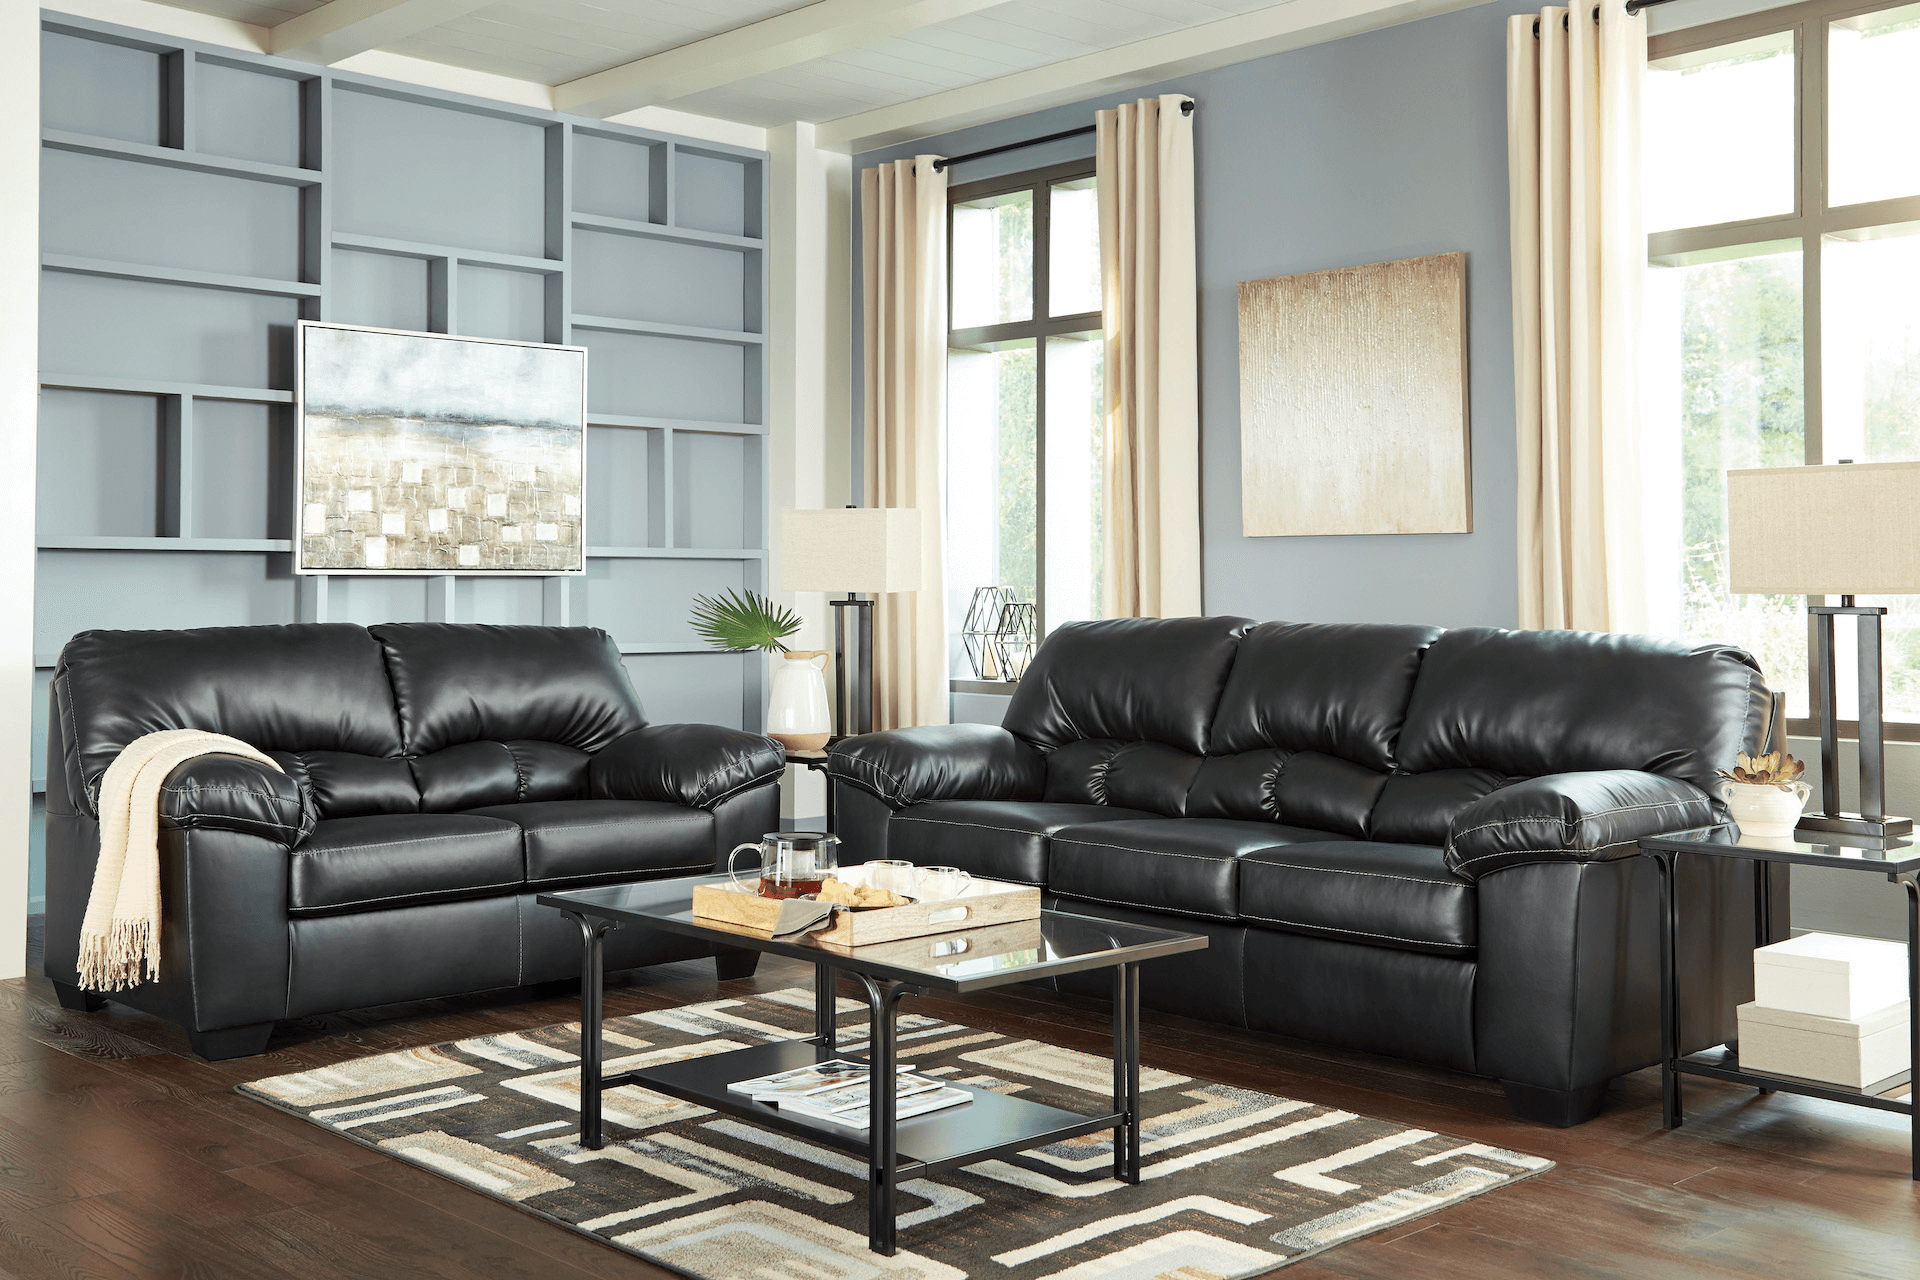 Atlantic_Furniture-Sofa_Sets-24702_T279_hi-res